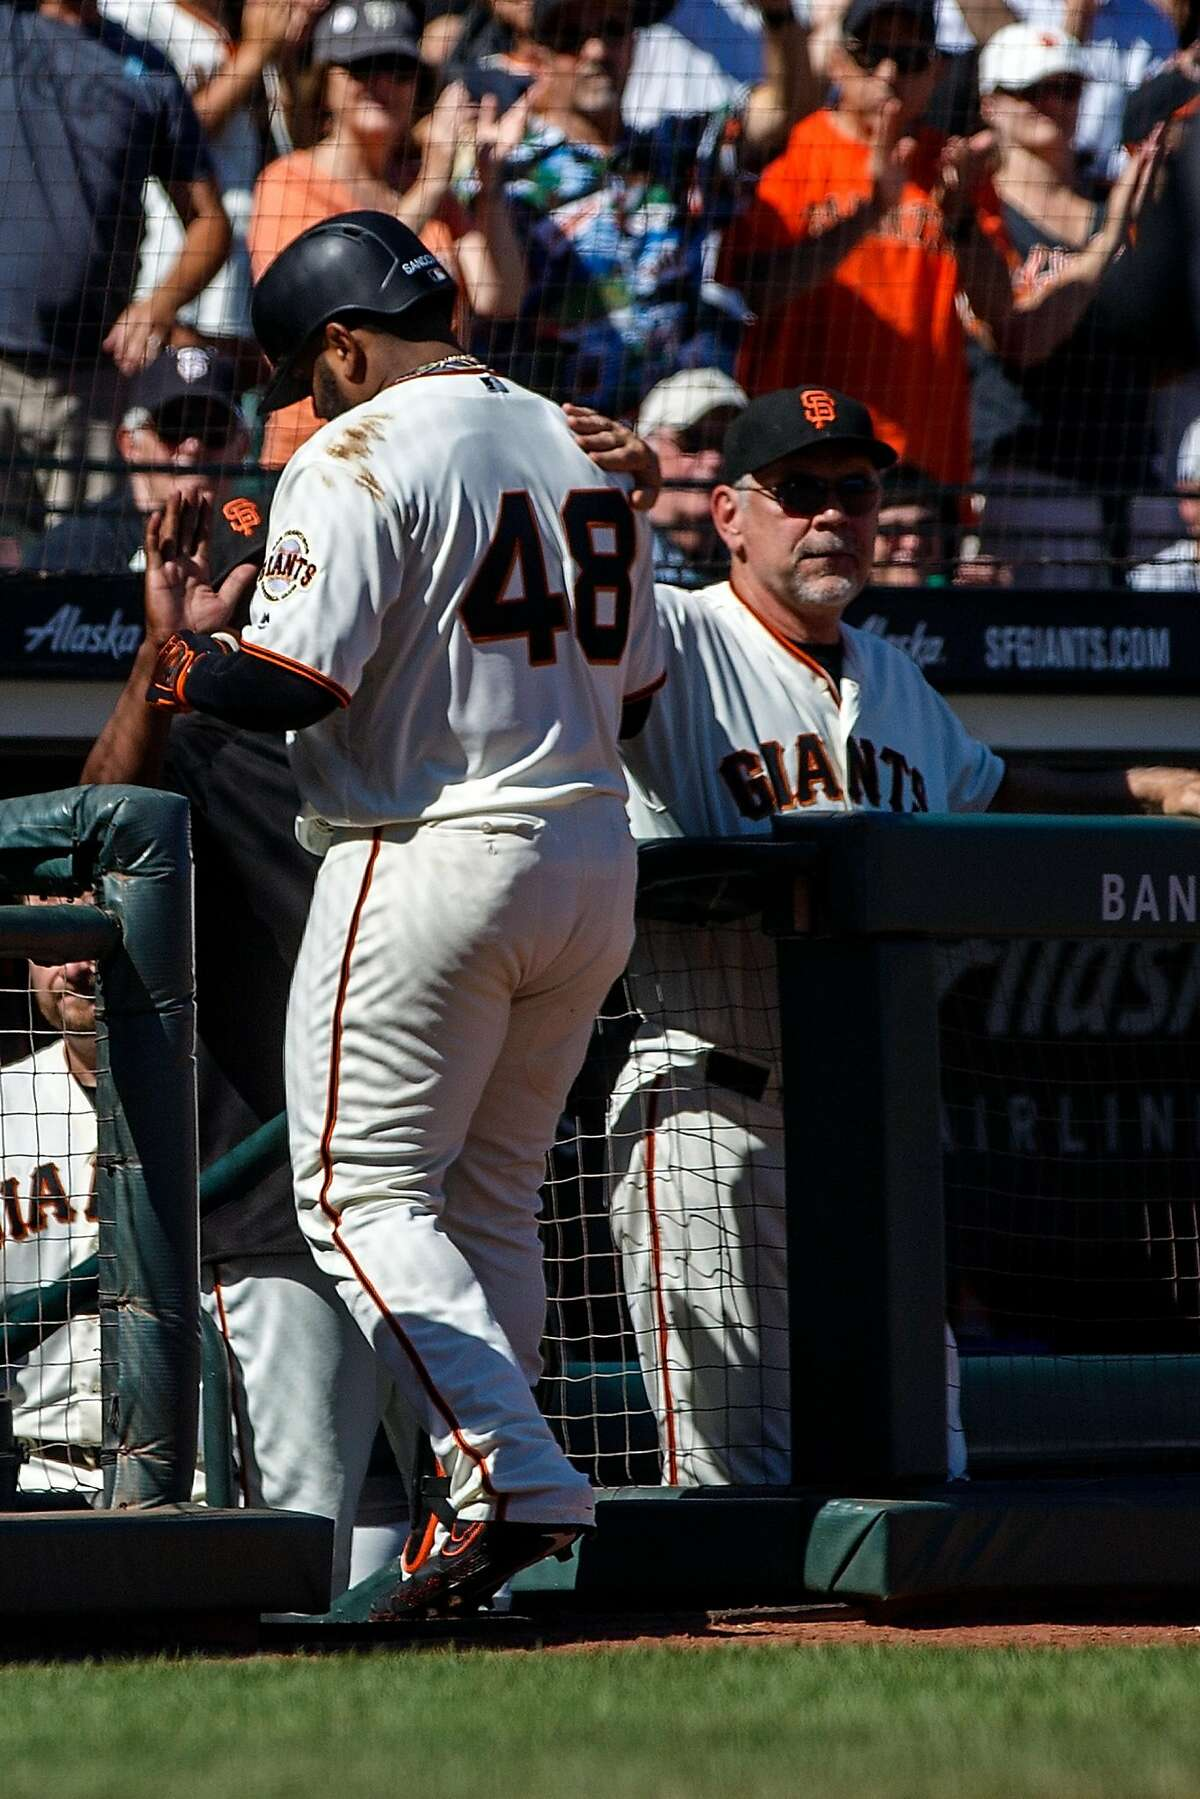 SAN FRANCISCO, CA - SEPTEMBER 01: Pablo Sandoval #48 of the San Francisco Giants is greeted by manager Bruce Bochy #15 in the dugout after grounding out against the San Diego Padres during the seventh inning at Oracle Park on September 1, 2019 in San Francisco, California. The San Diego Padres defeated the San Francisco Giants 8-4. (Photo by Jason O. Watson/Getty Images)